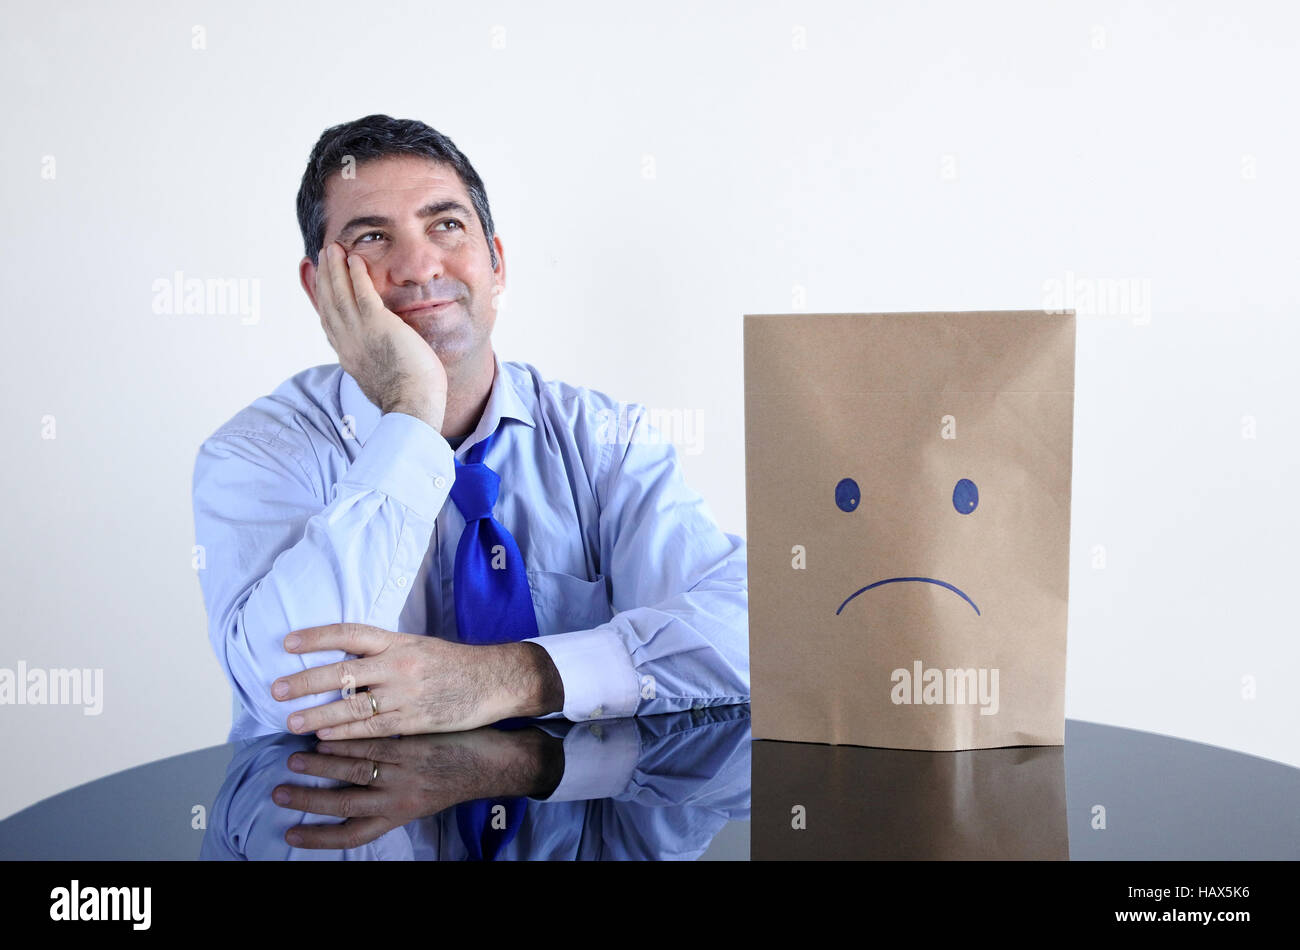 Man changing his mood from sad to happy. Real People. copy space - Stock Image